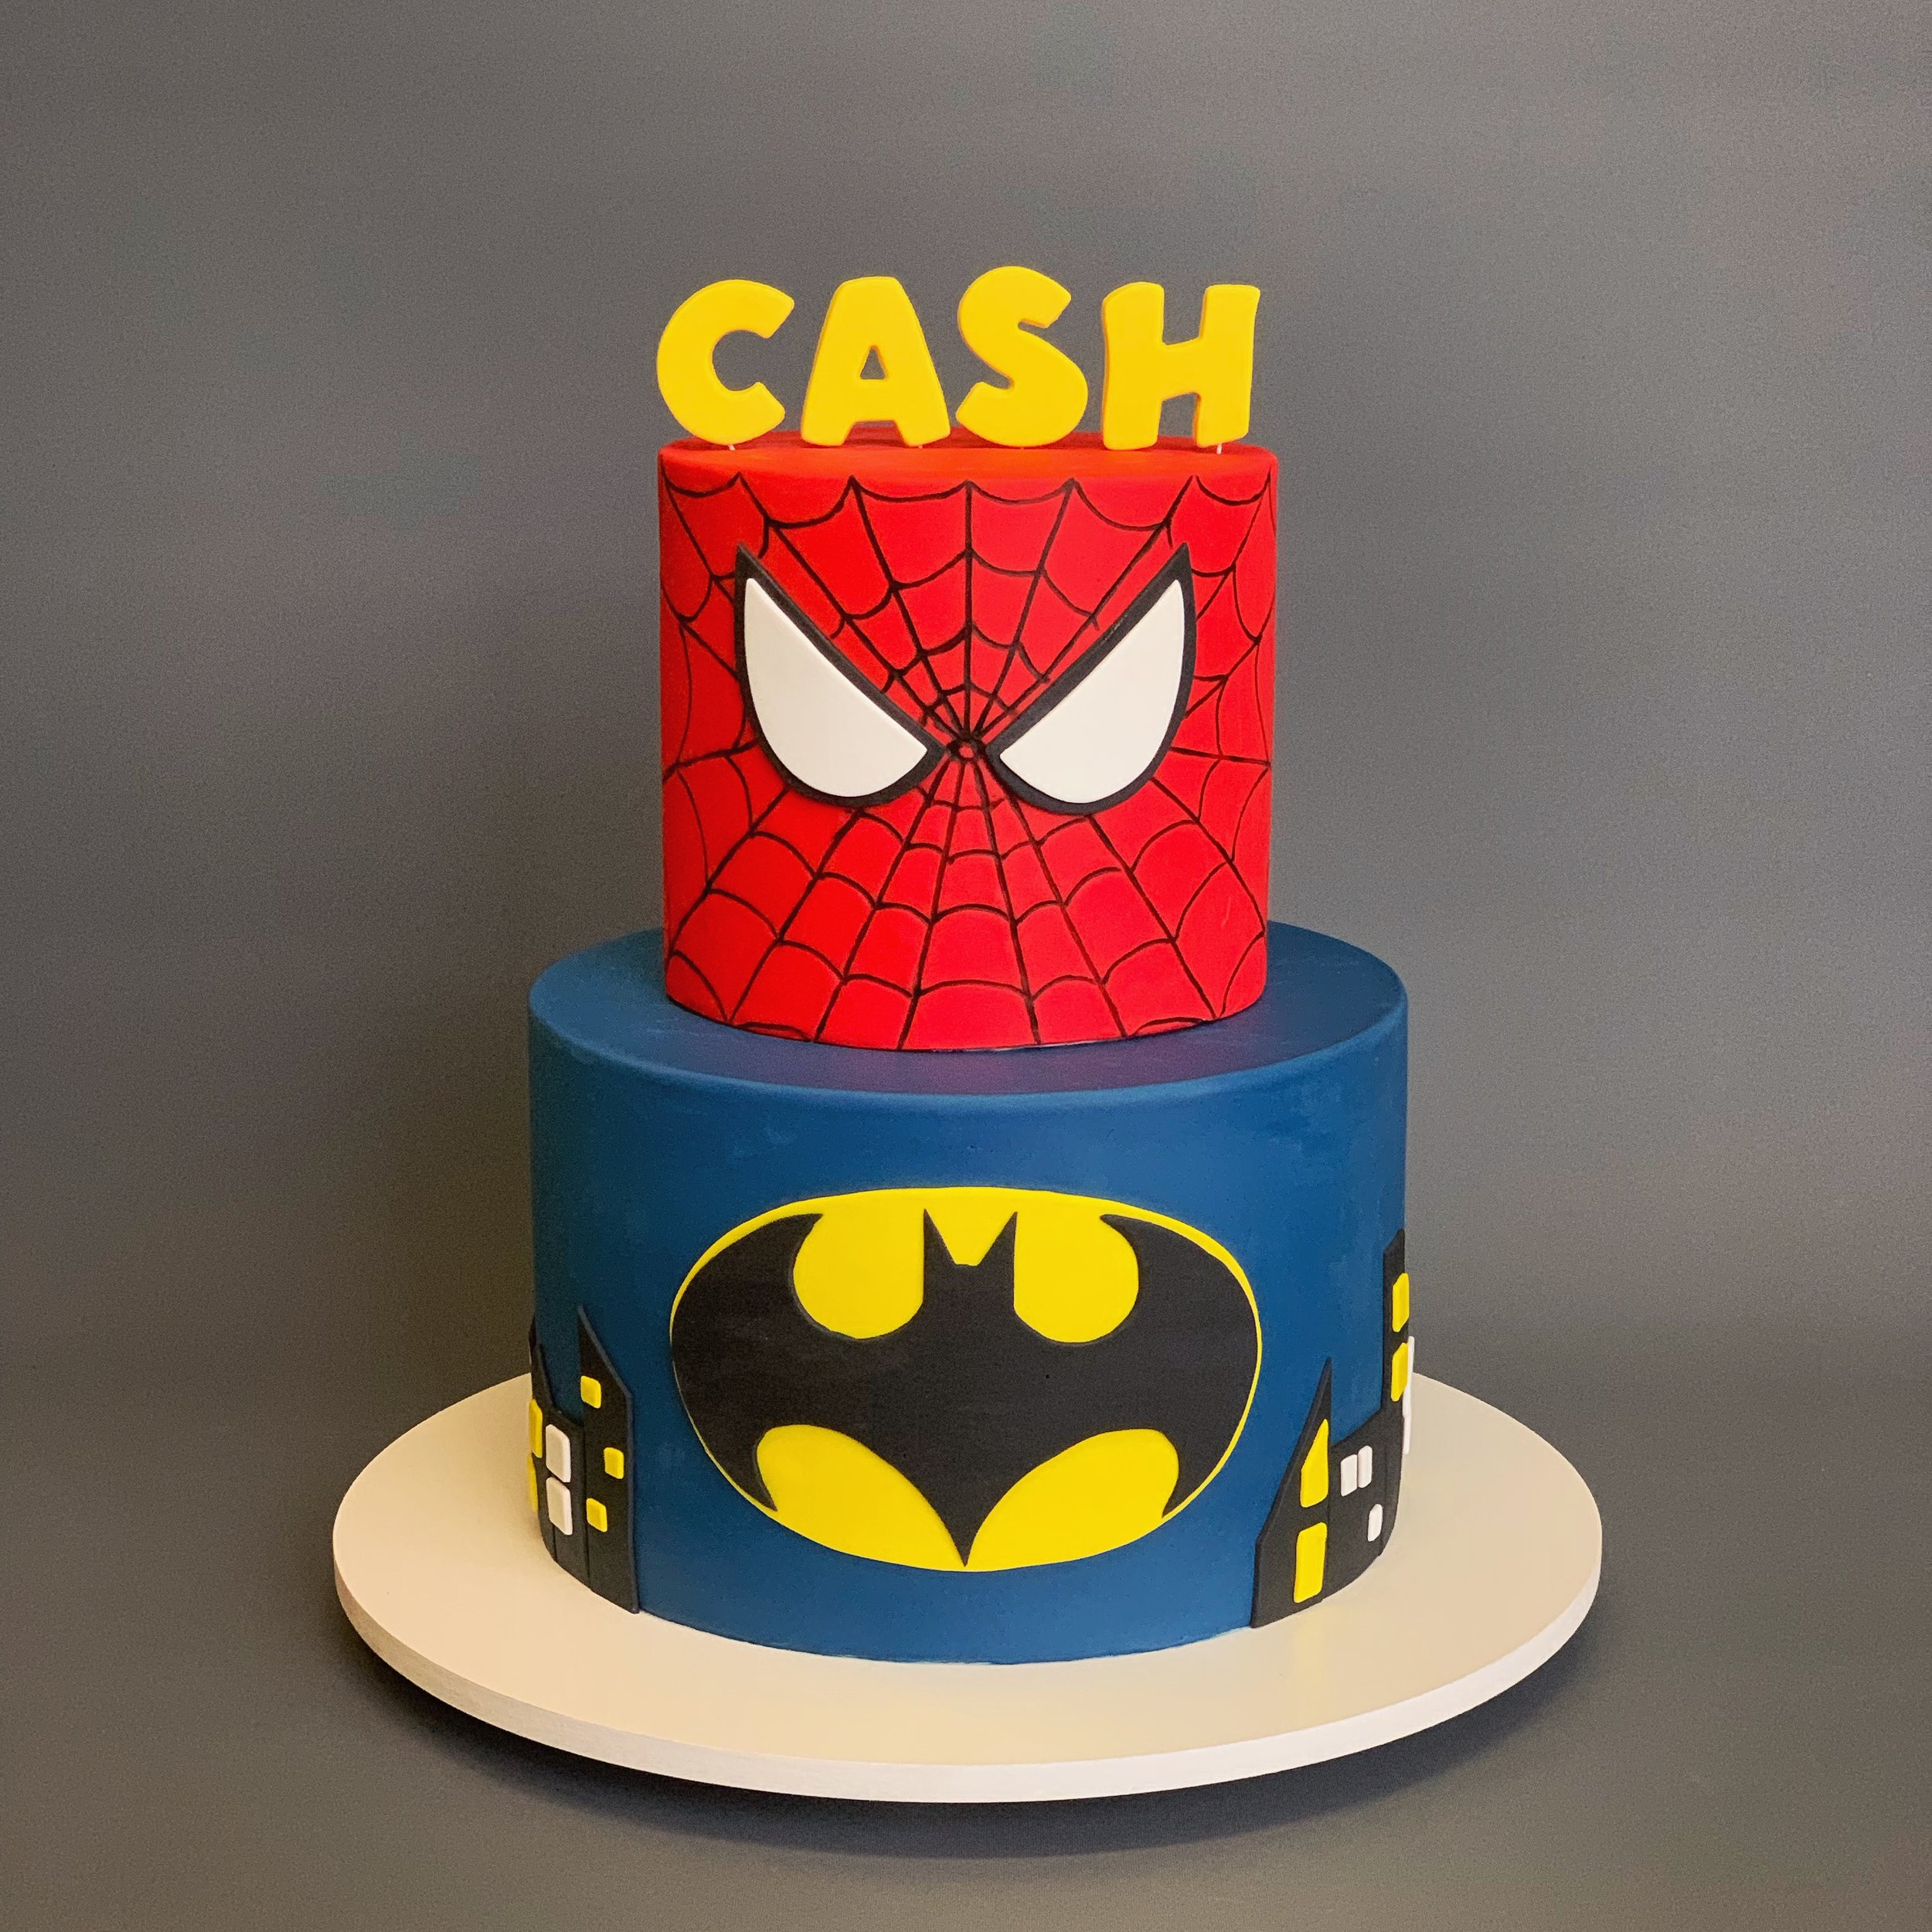 Spider Man And Batman Cake Image Copyright Carla Schier